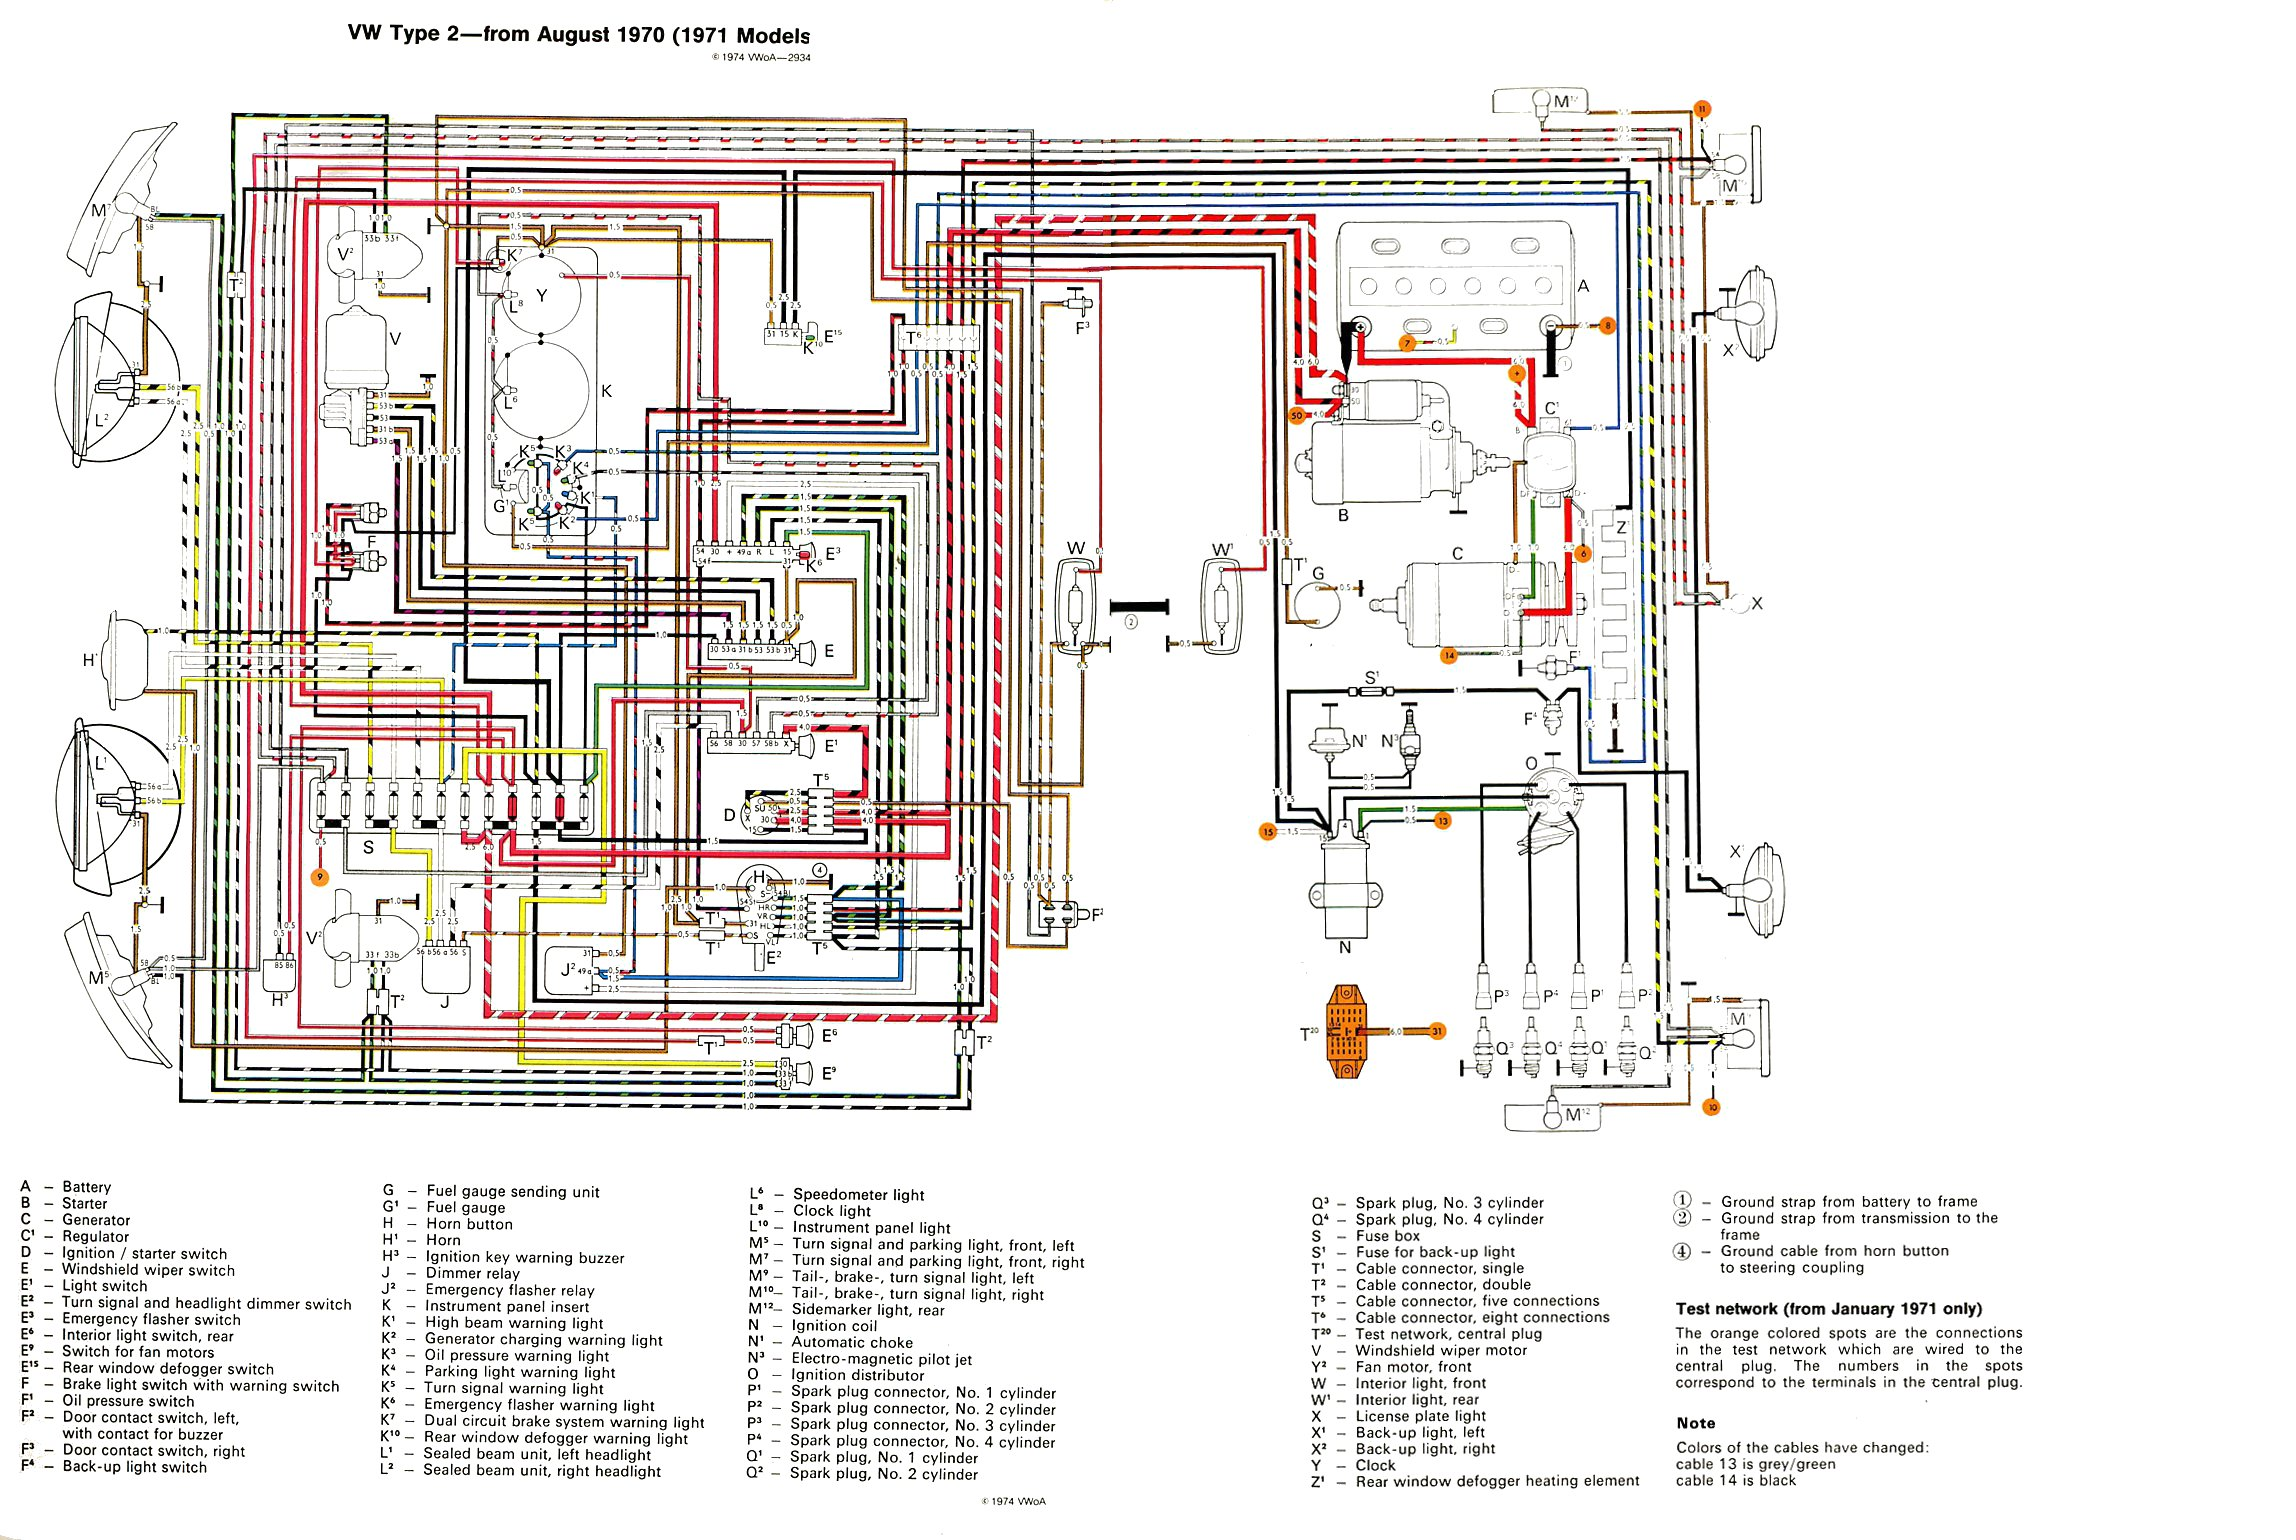 Type 2 Wiring Diagrams Diagram For A 3 Way Switch With Lights